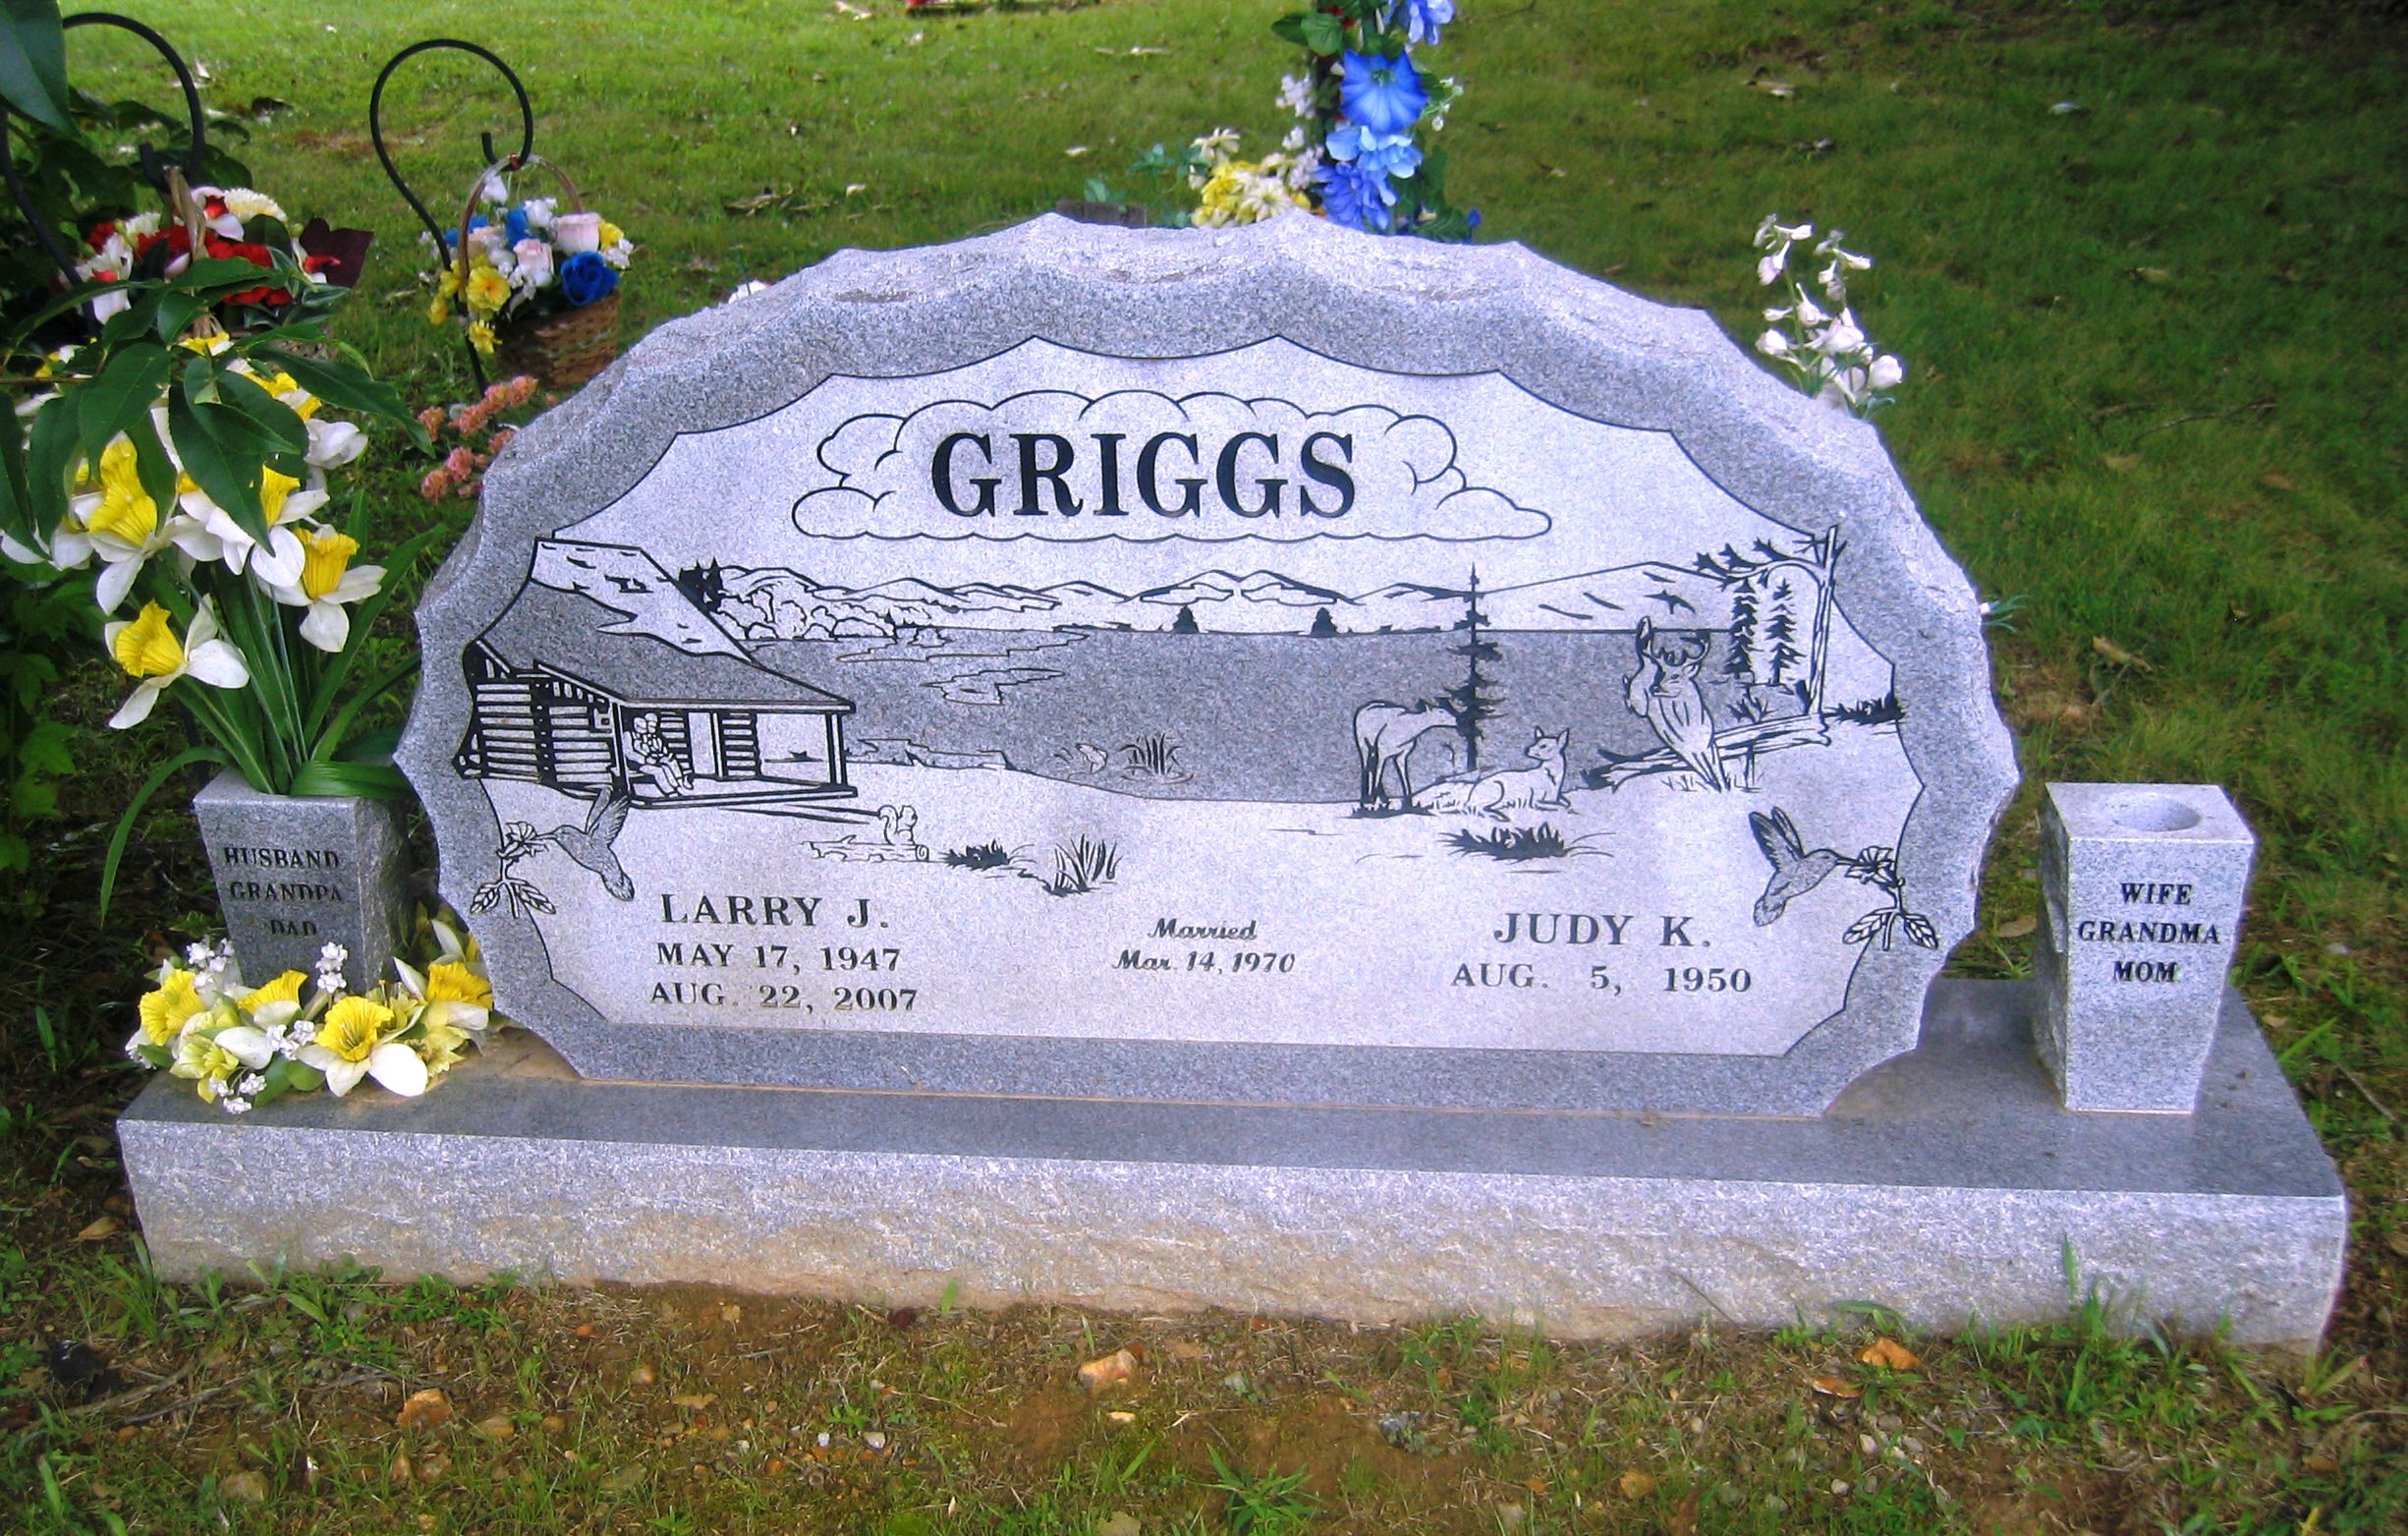 Larry Junior Griggs